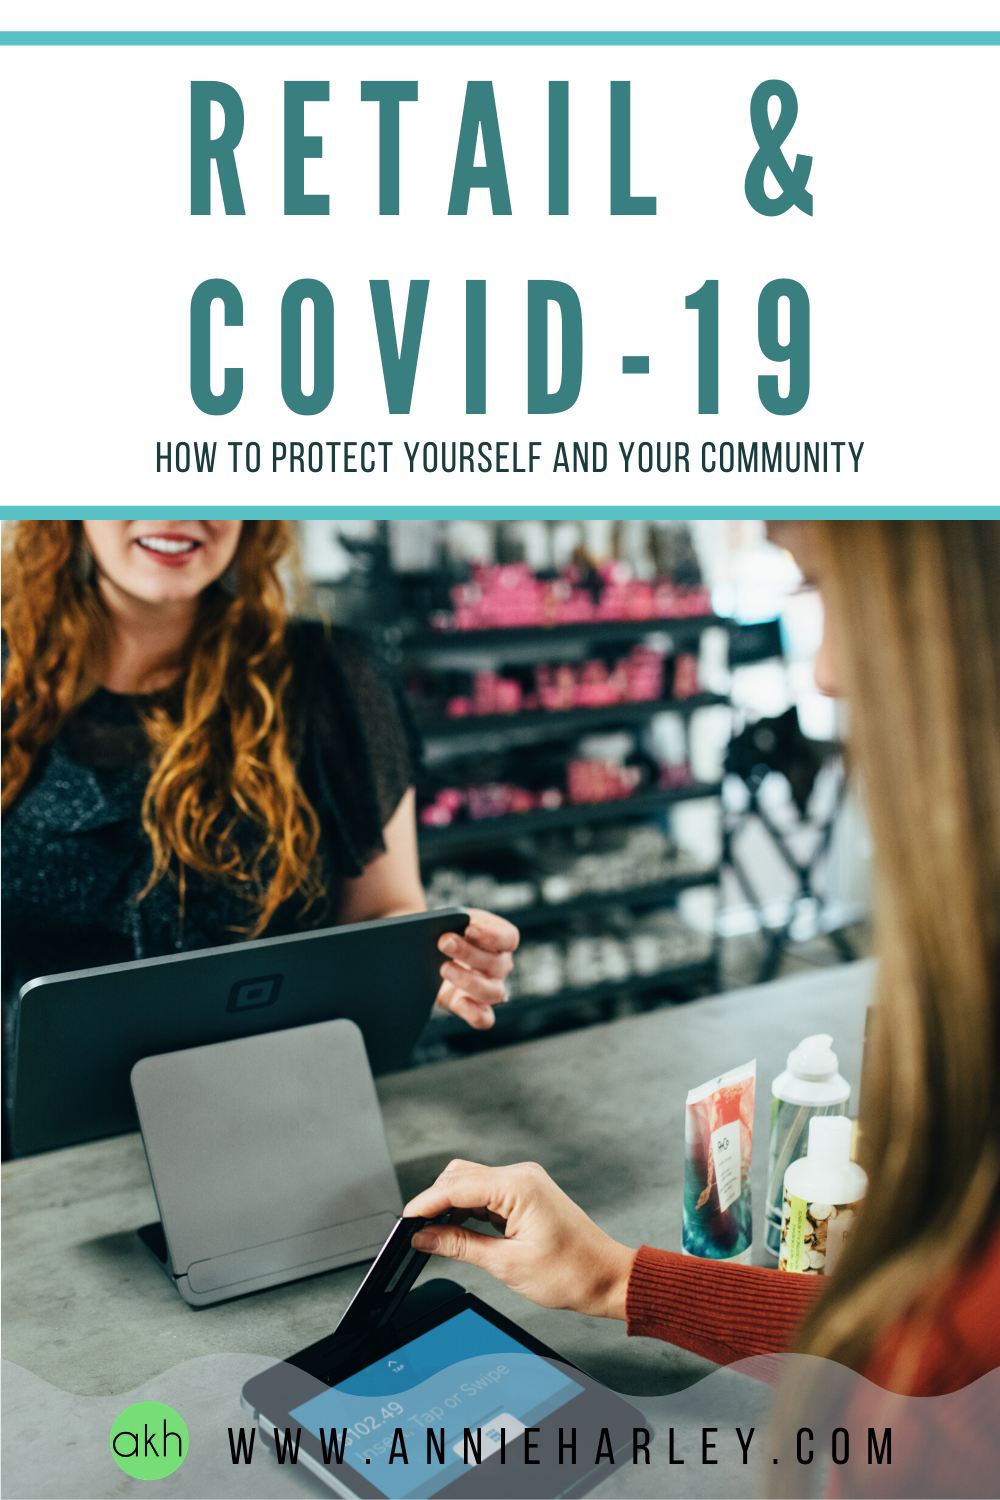 Retail & COVID-19: How to Protect Yourself and Your Community | www.annieharley.com